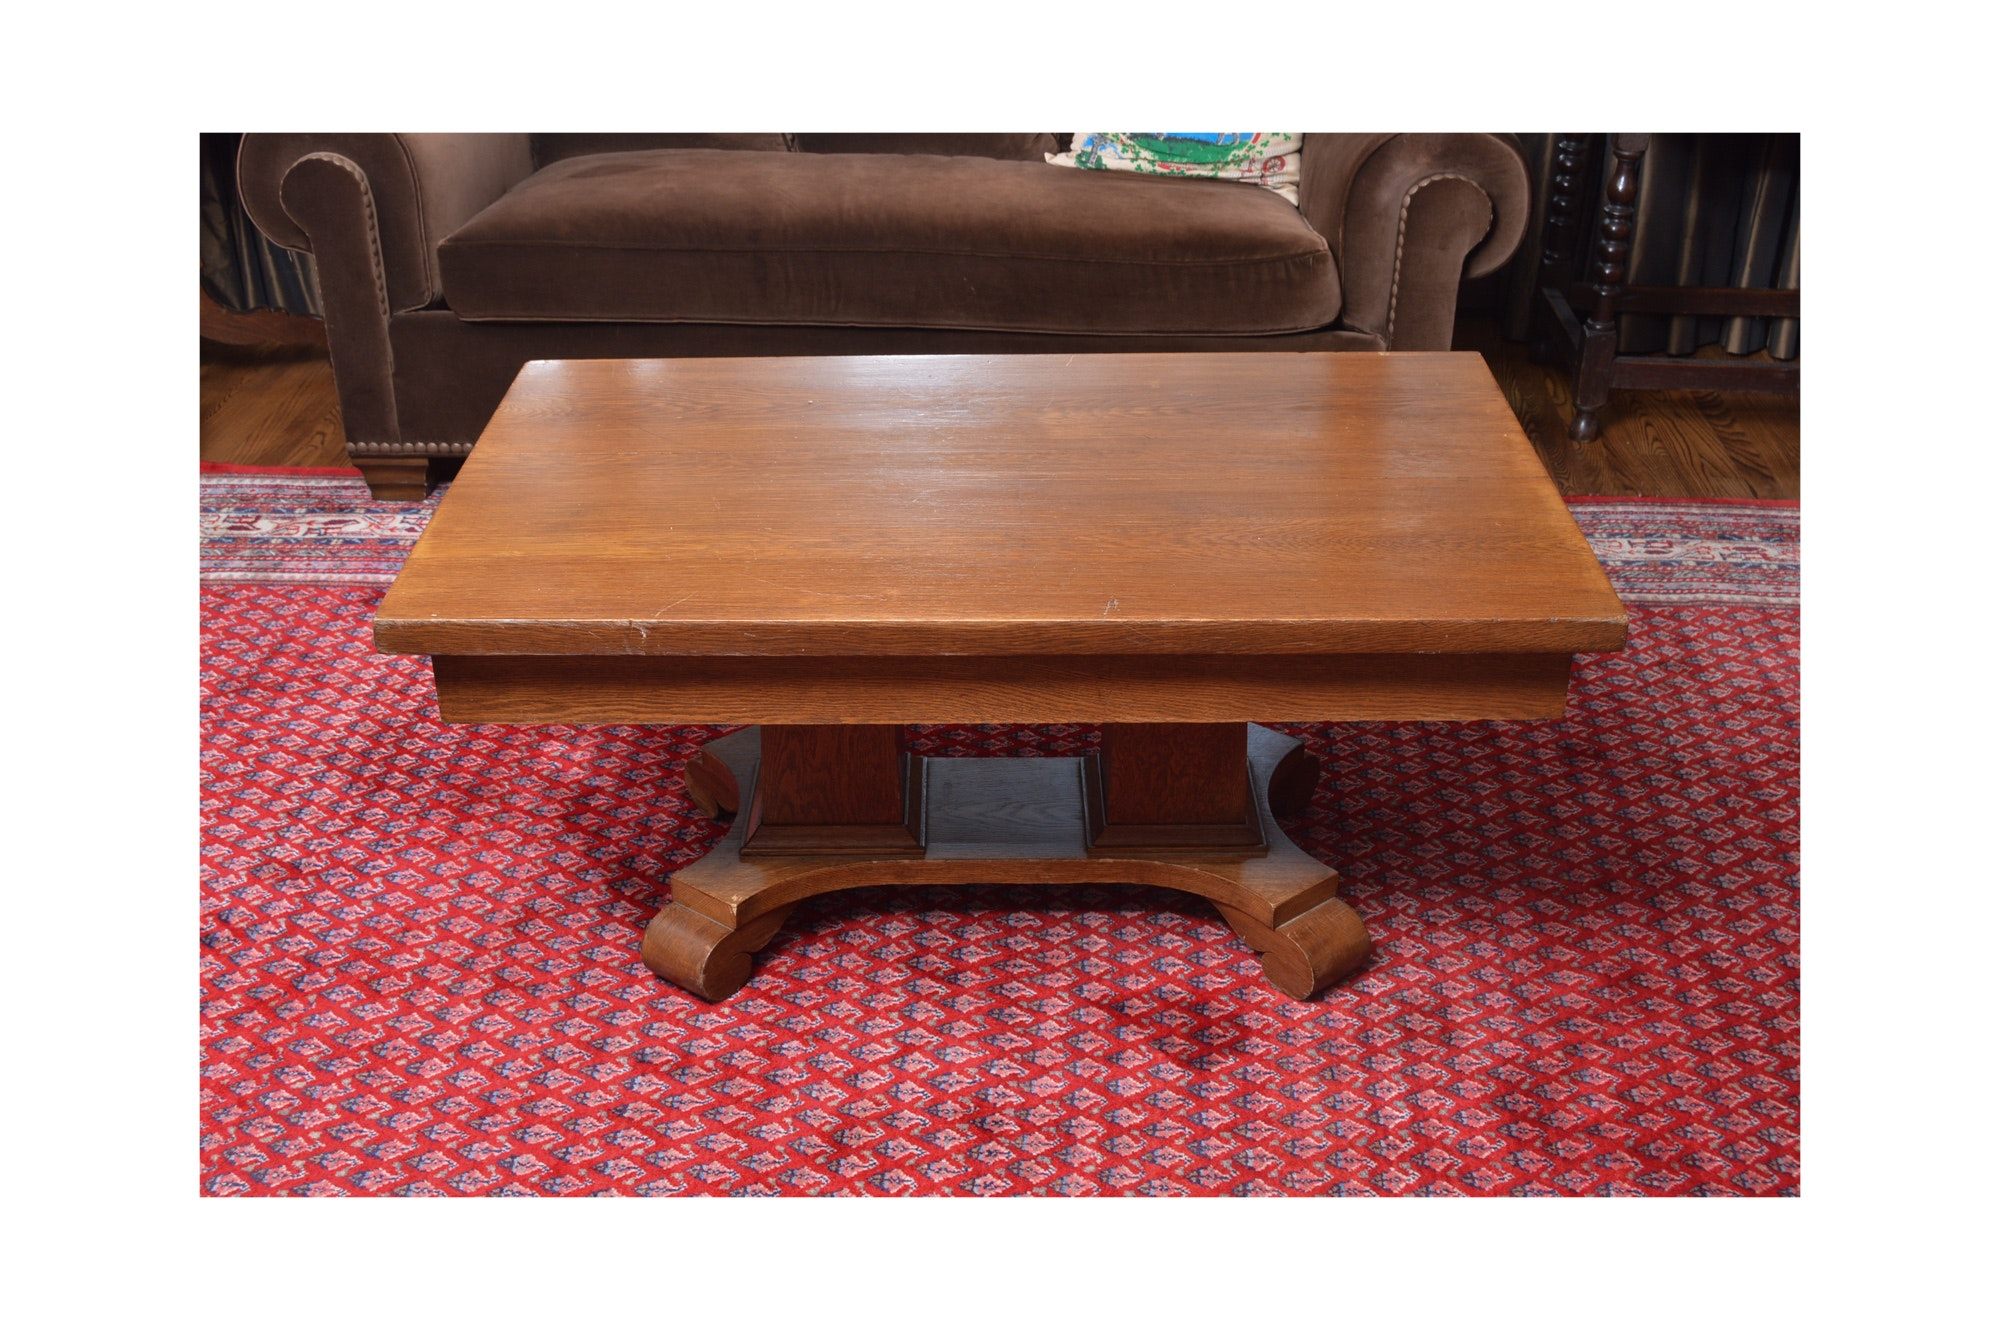 An Vintage Oak Coffee Table With Drawer